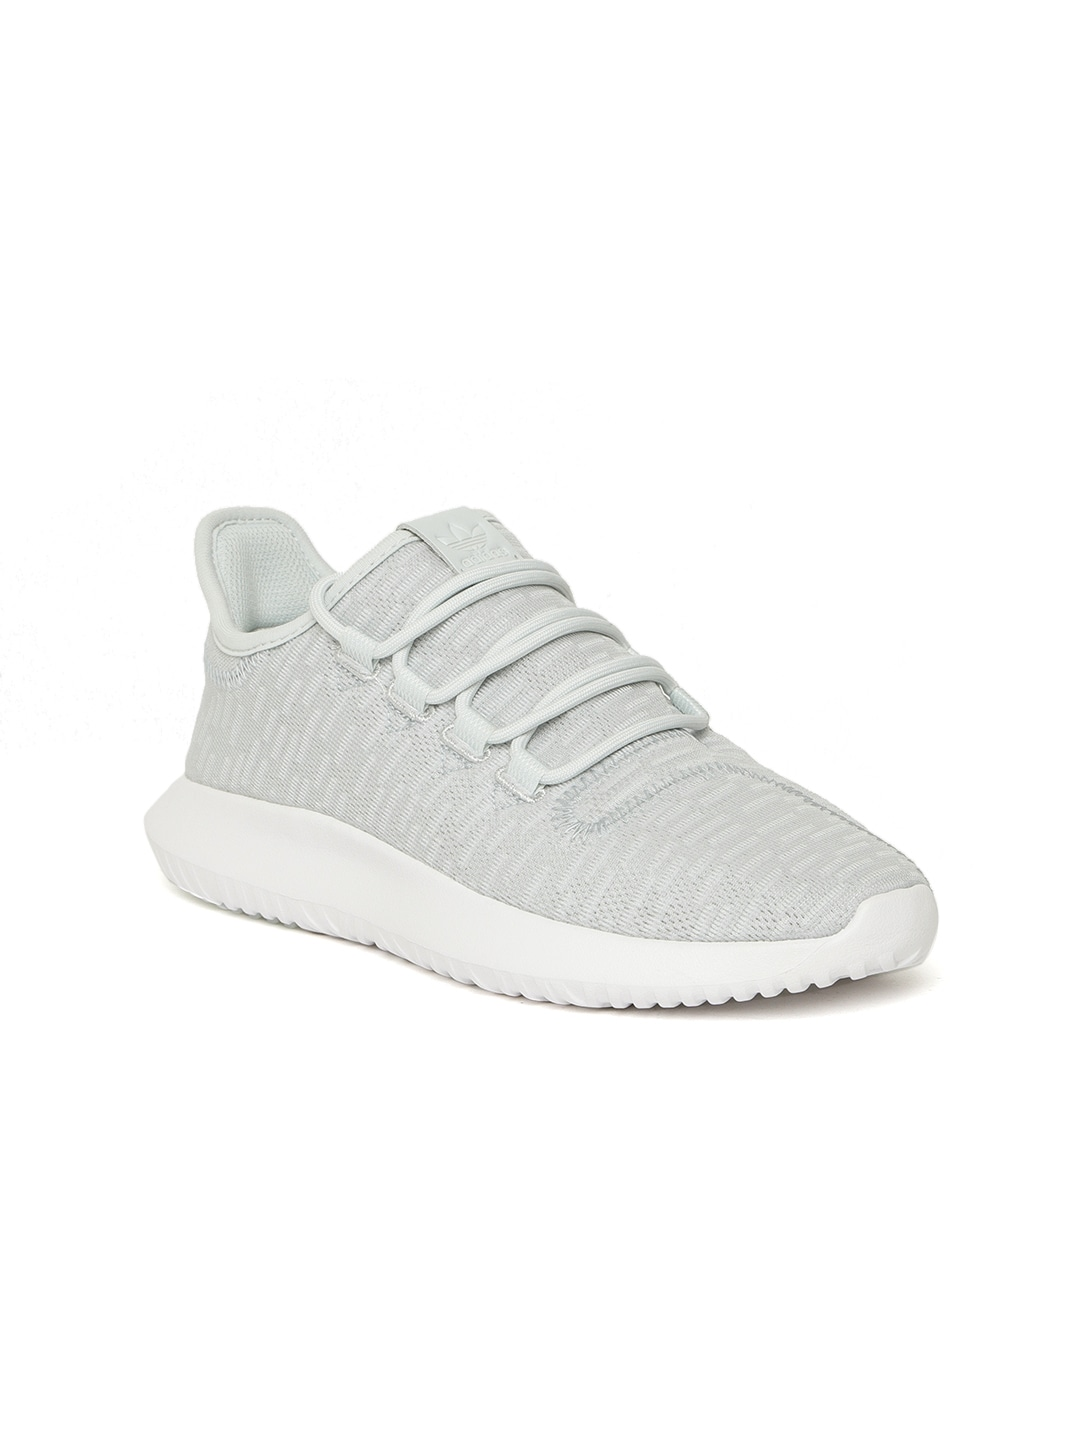 d2c5b9318dc1 Women s Adidas Shoes - Buy Adidas Shoes for Women Online in India